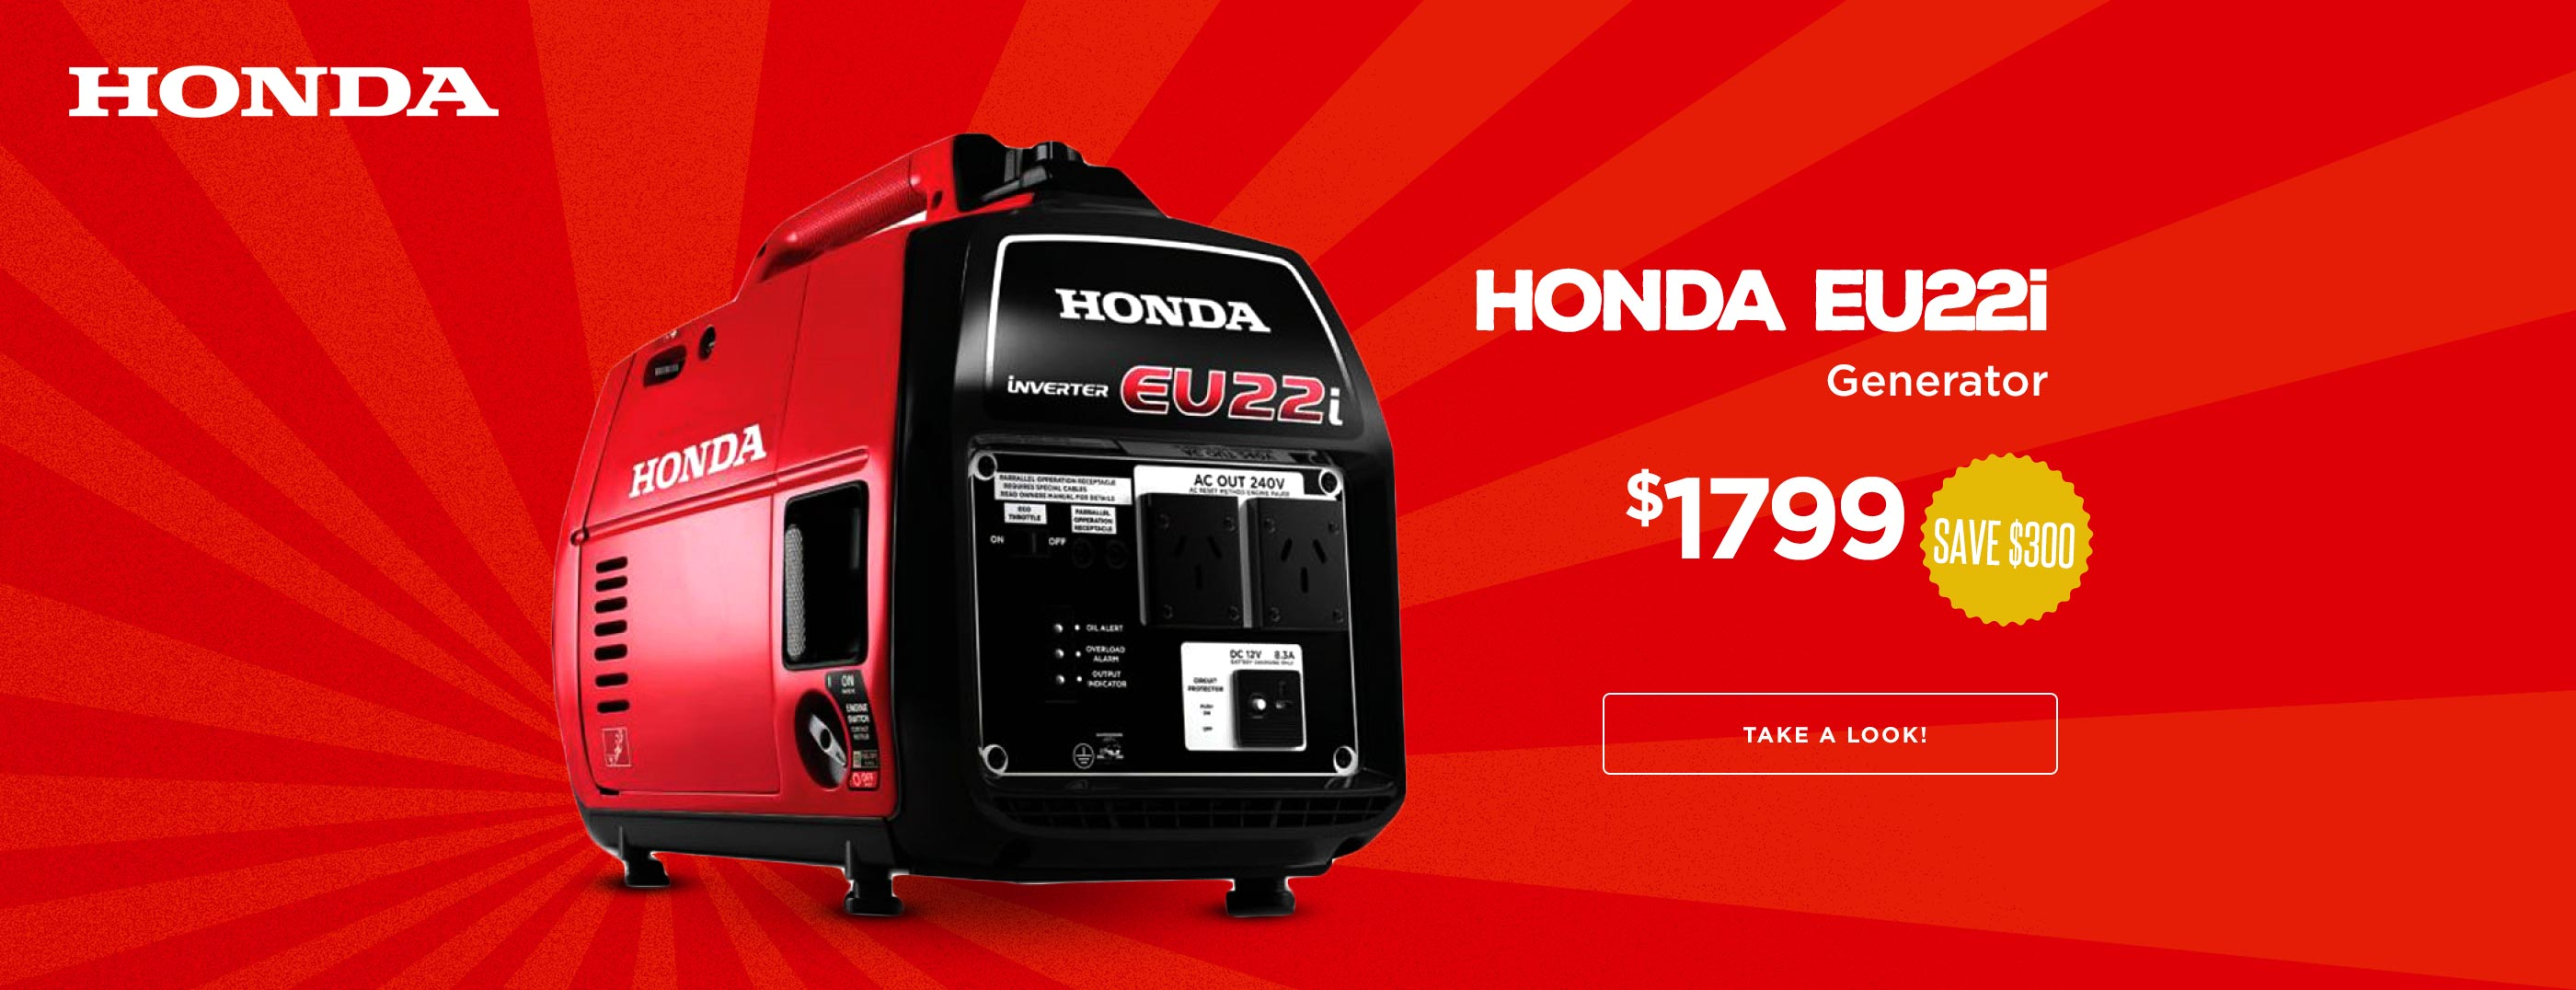 NEW Honda Eu22i Save $300